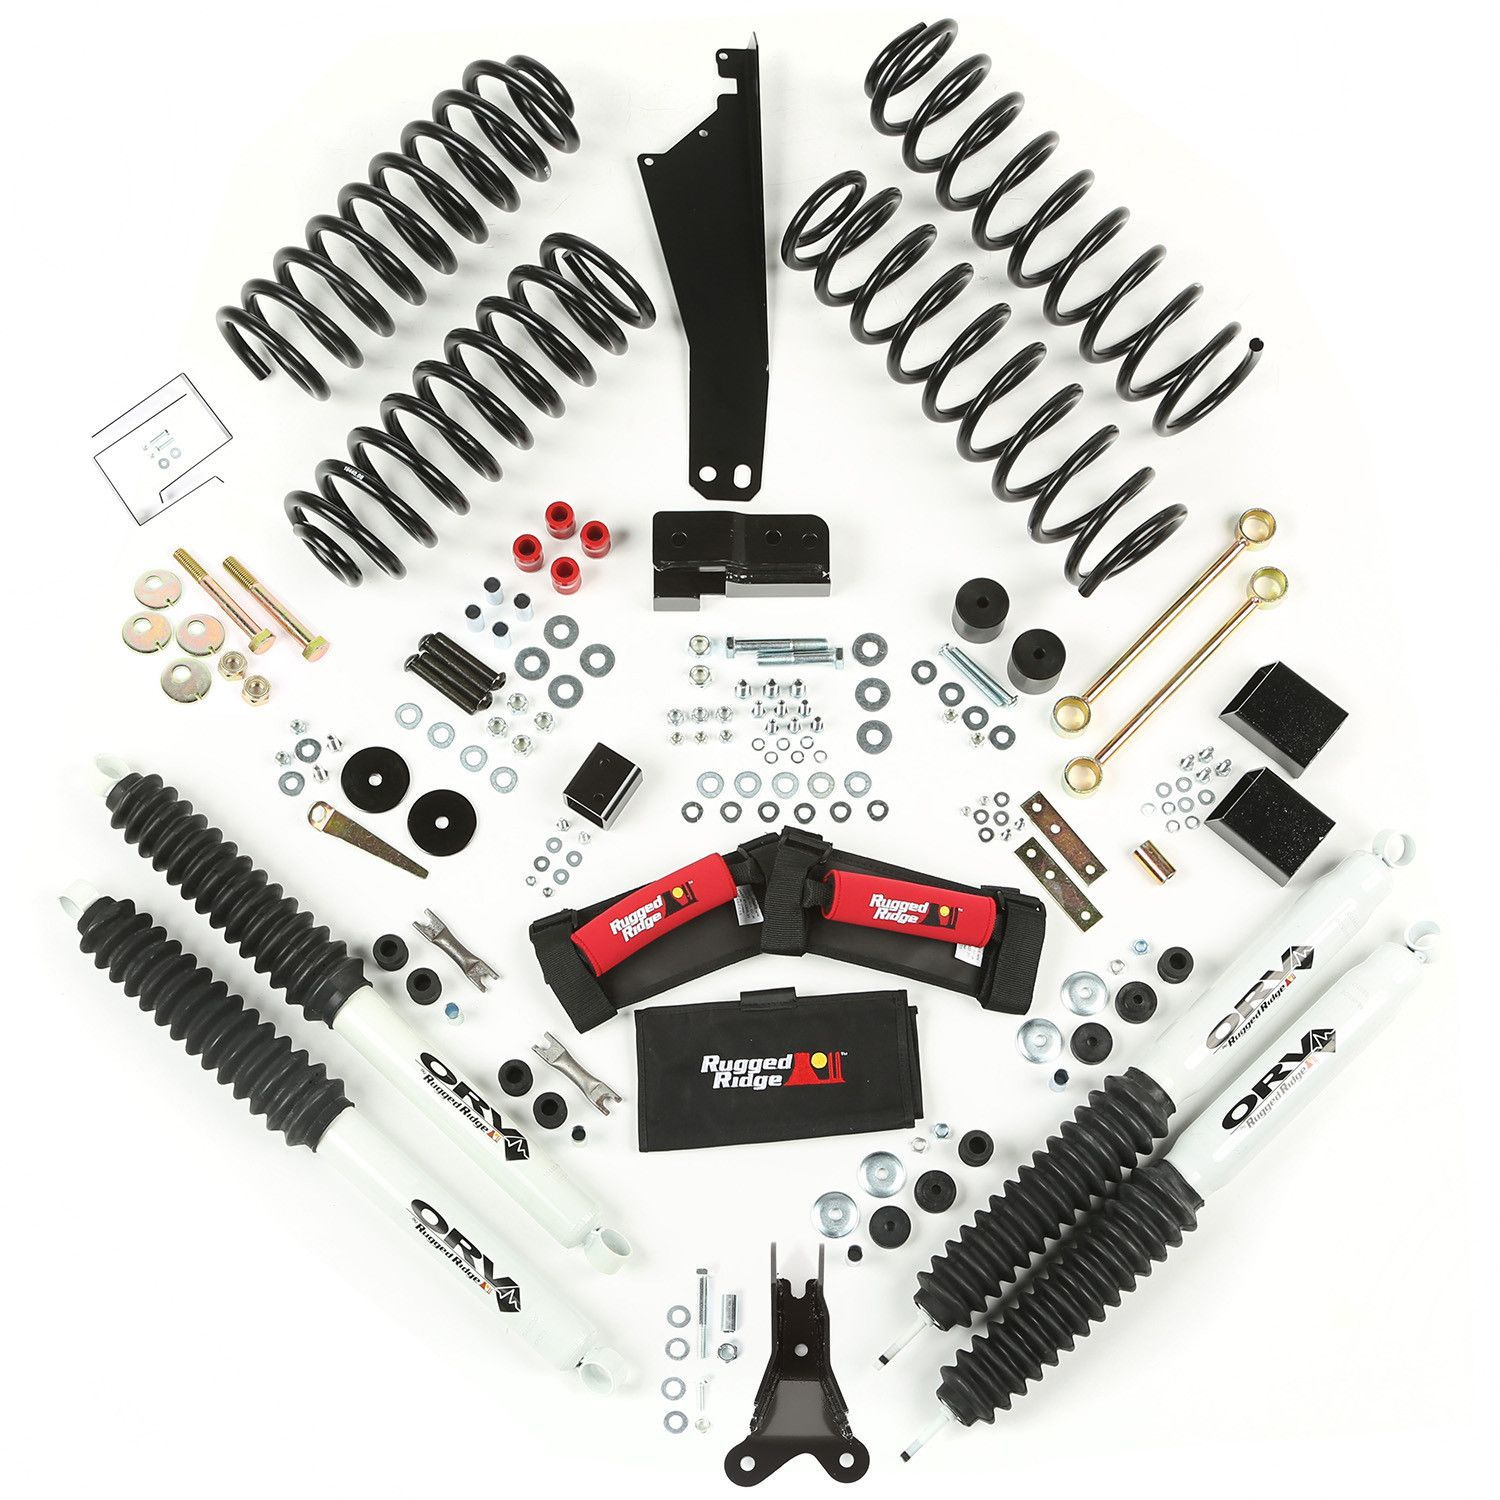 379f0d65767078642f3098d378dc6df3 Take A Look About Jeep Dog Accessories with Captivating Gallery Cars Review